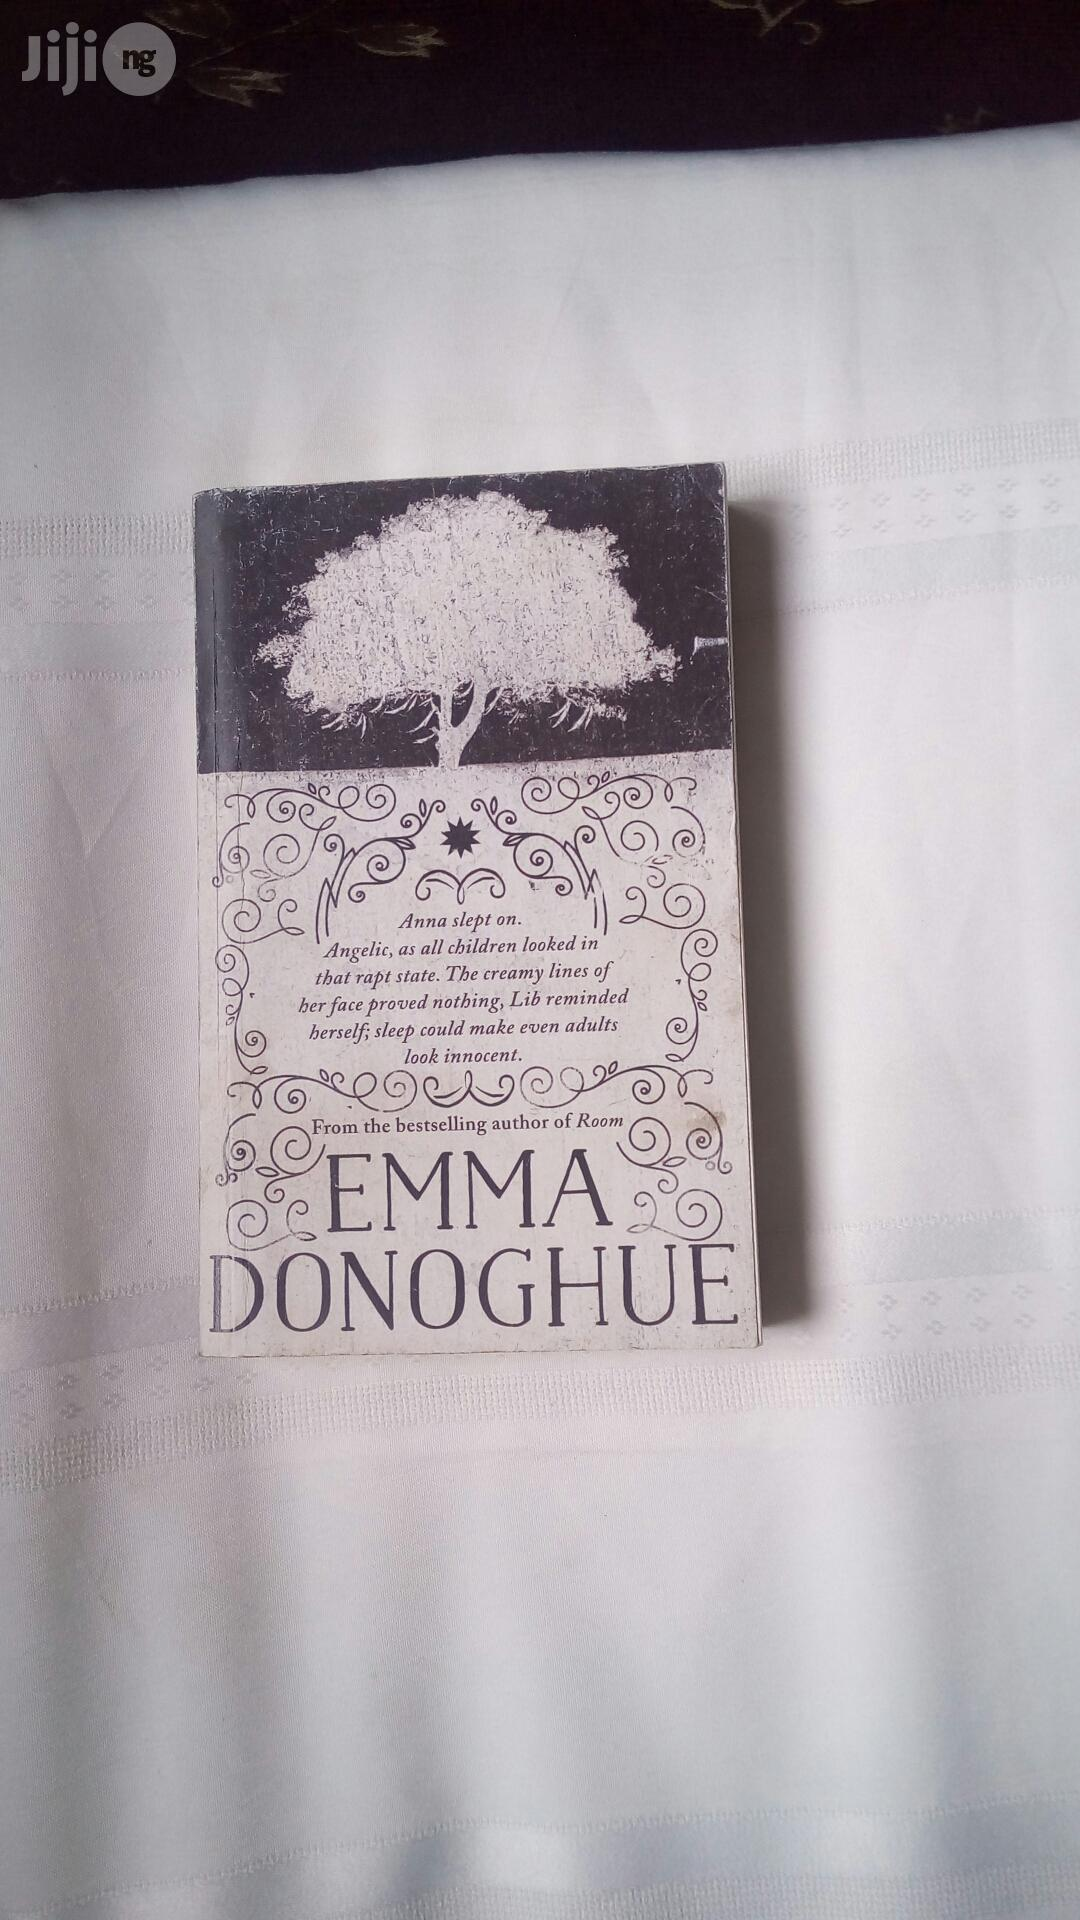 The Wonder - A Novel By Emma Donoghue